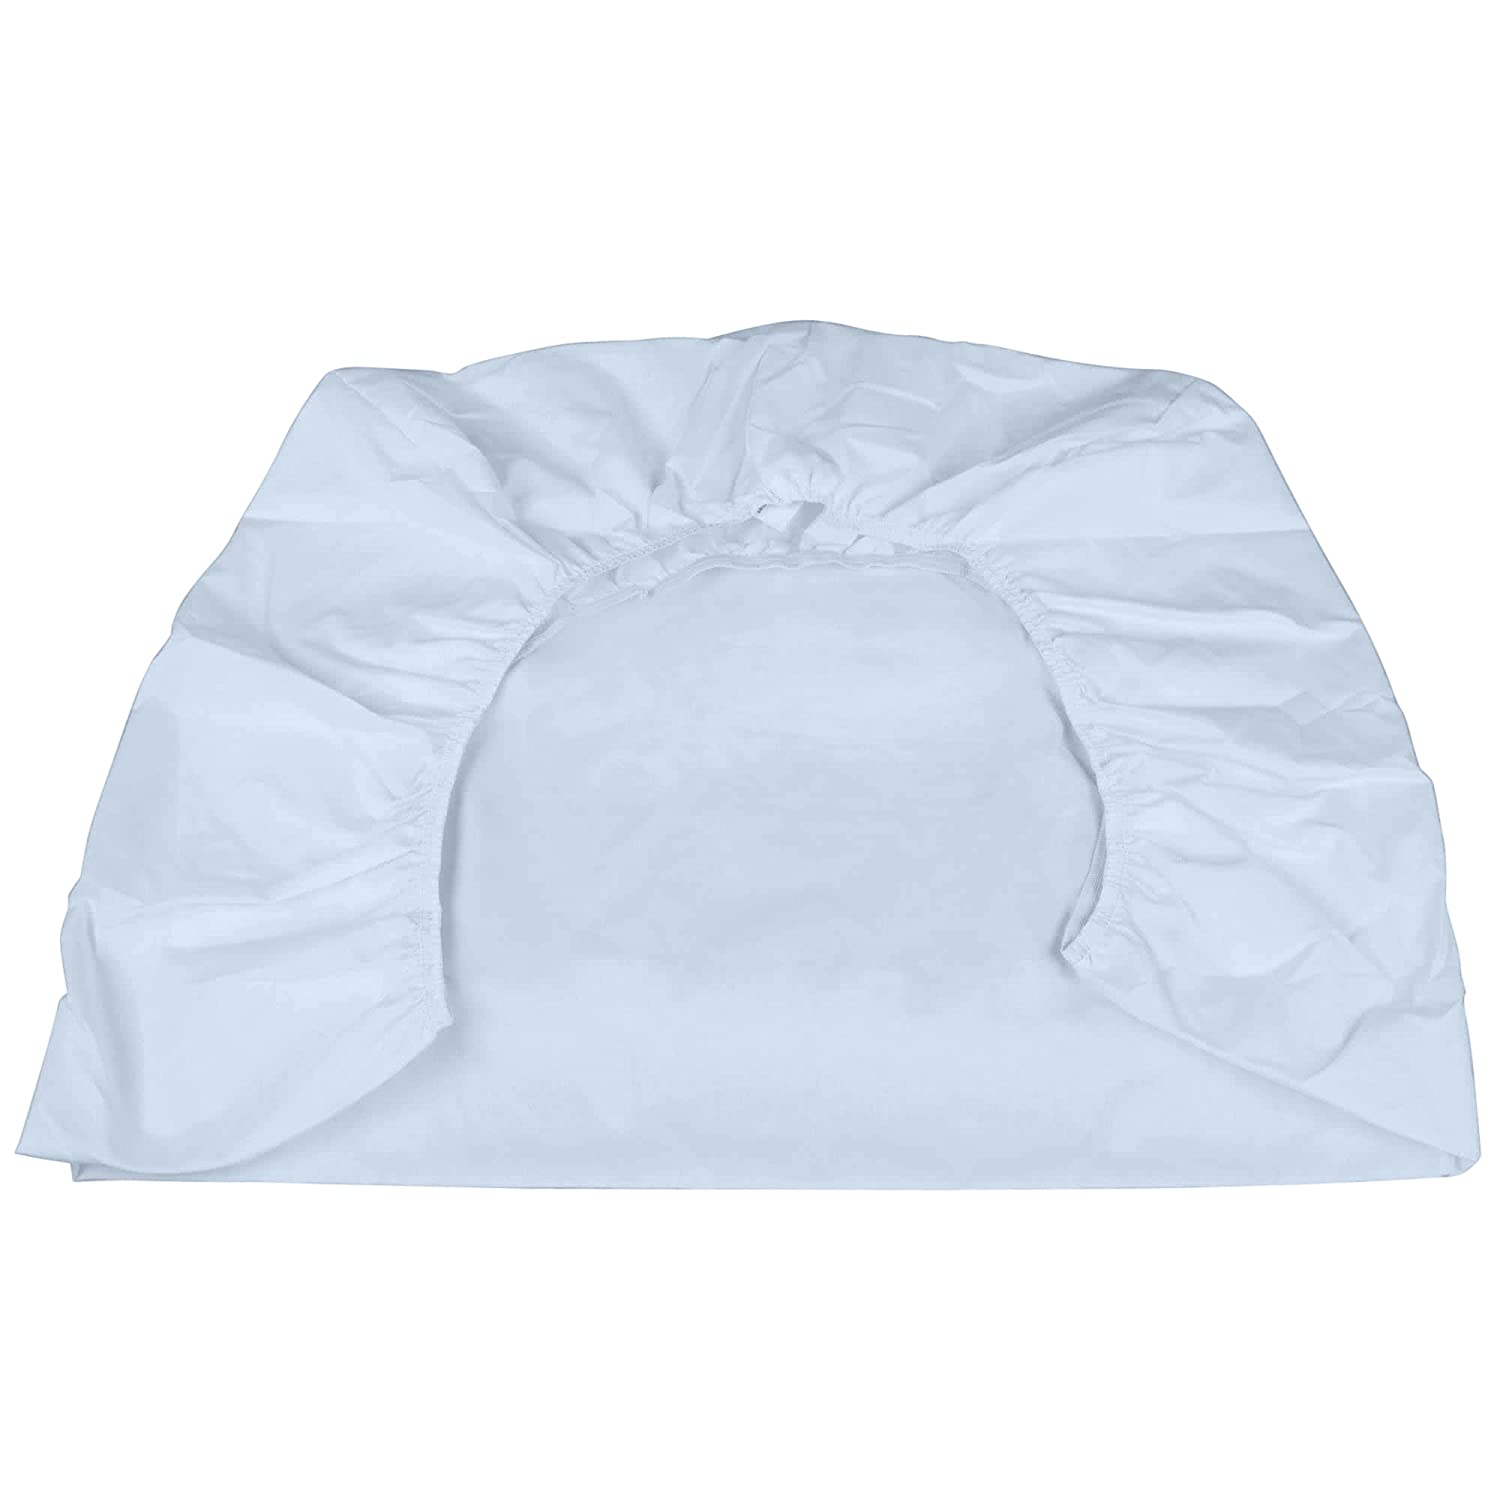 Bassinet Sheet Jersey Knit with Fitted Stretch, Ideal for Bassinet Mattress, 30